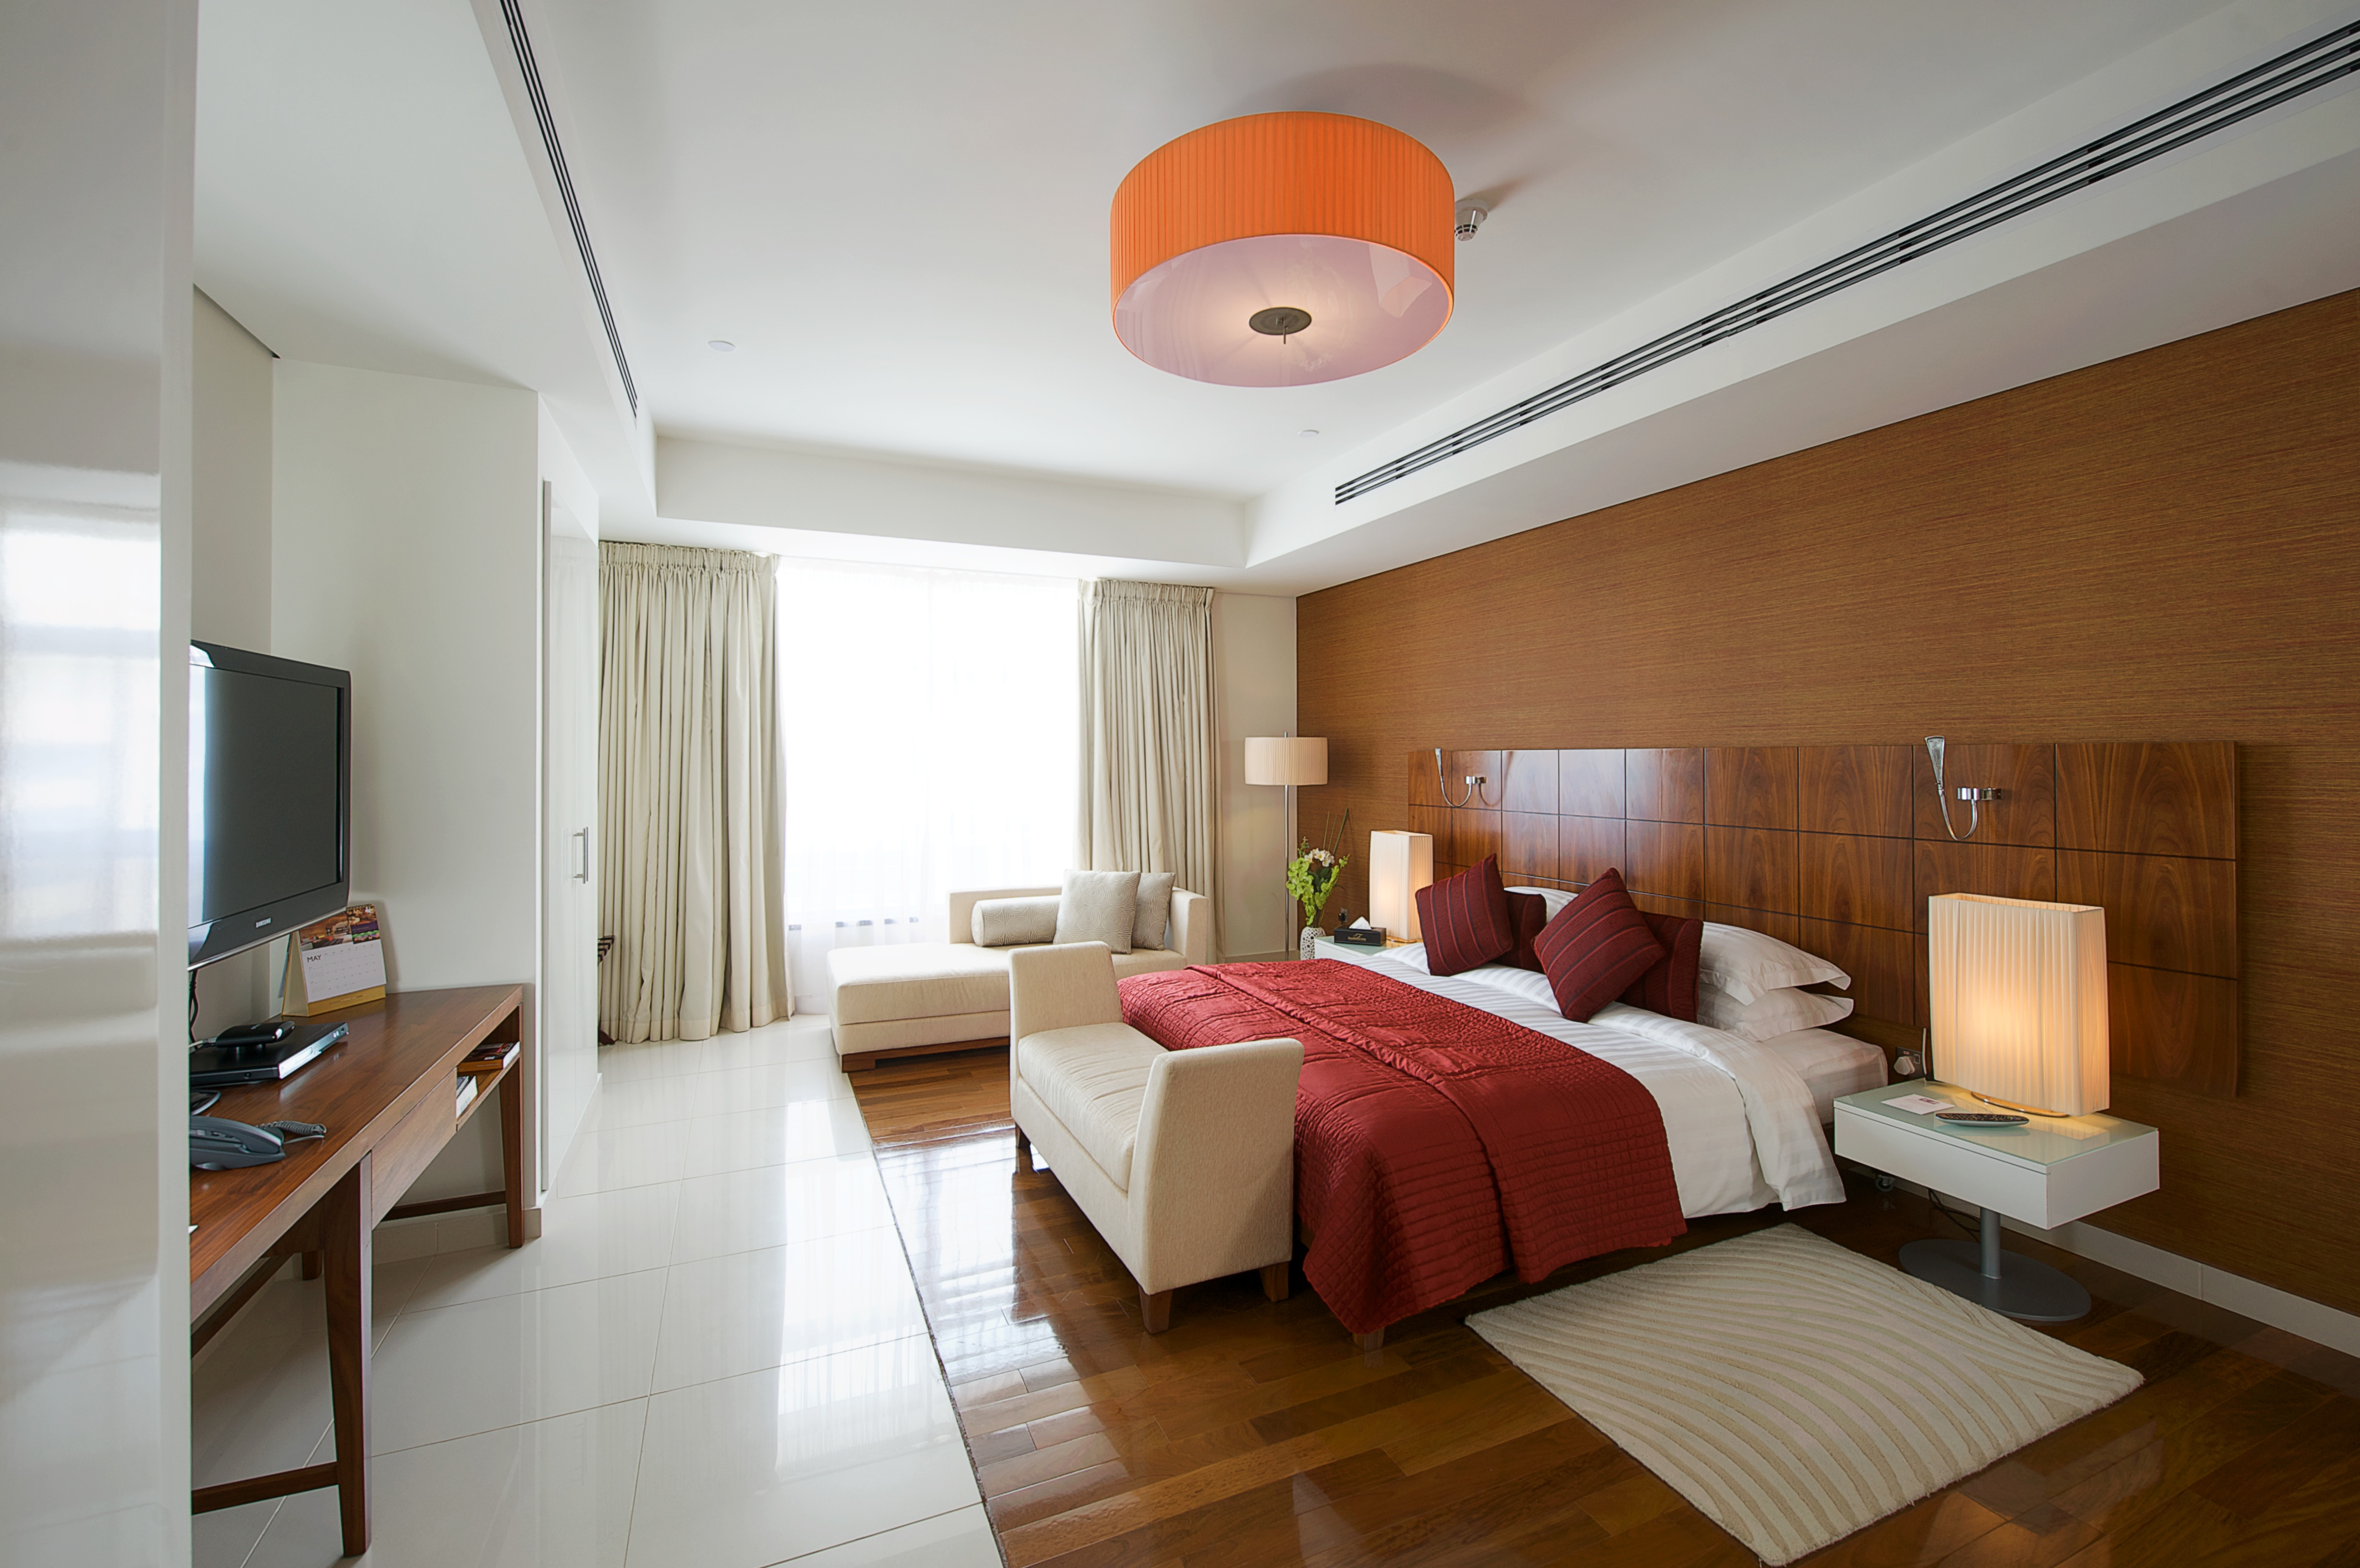 Great Deluxe Doha Accommodation In Luxury Serviced Apartments. Frasers Hospitality